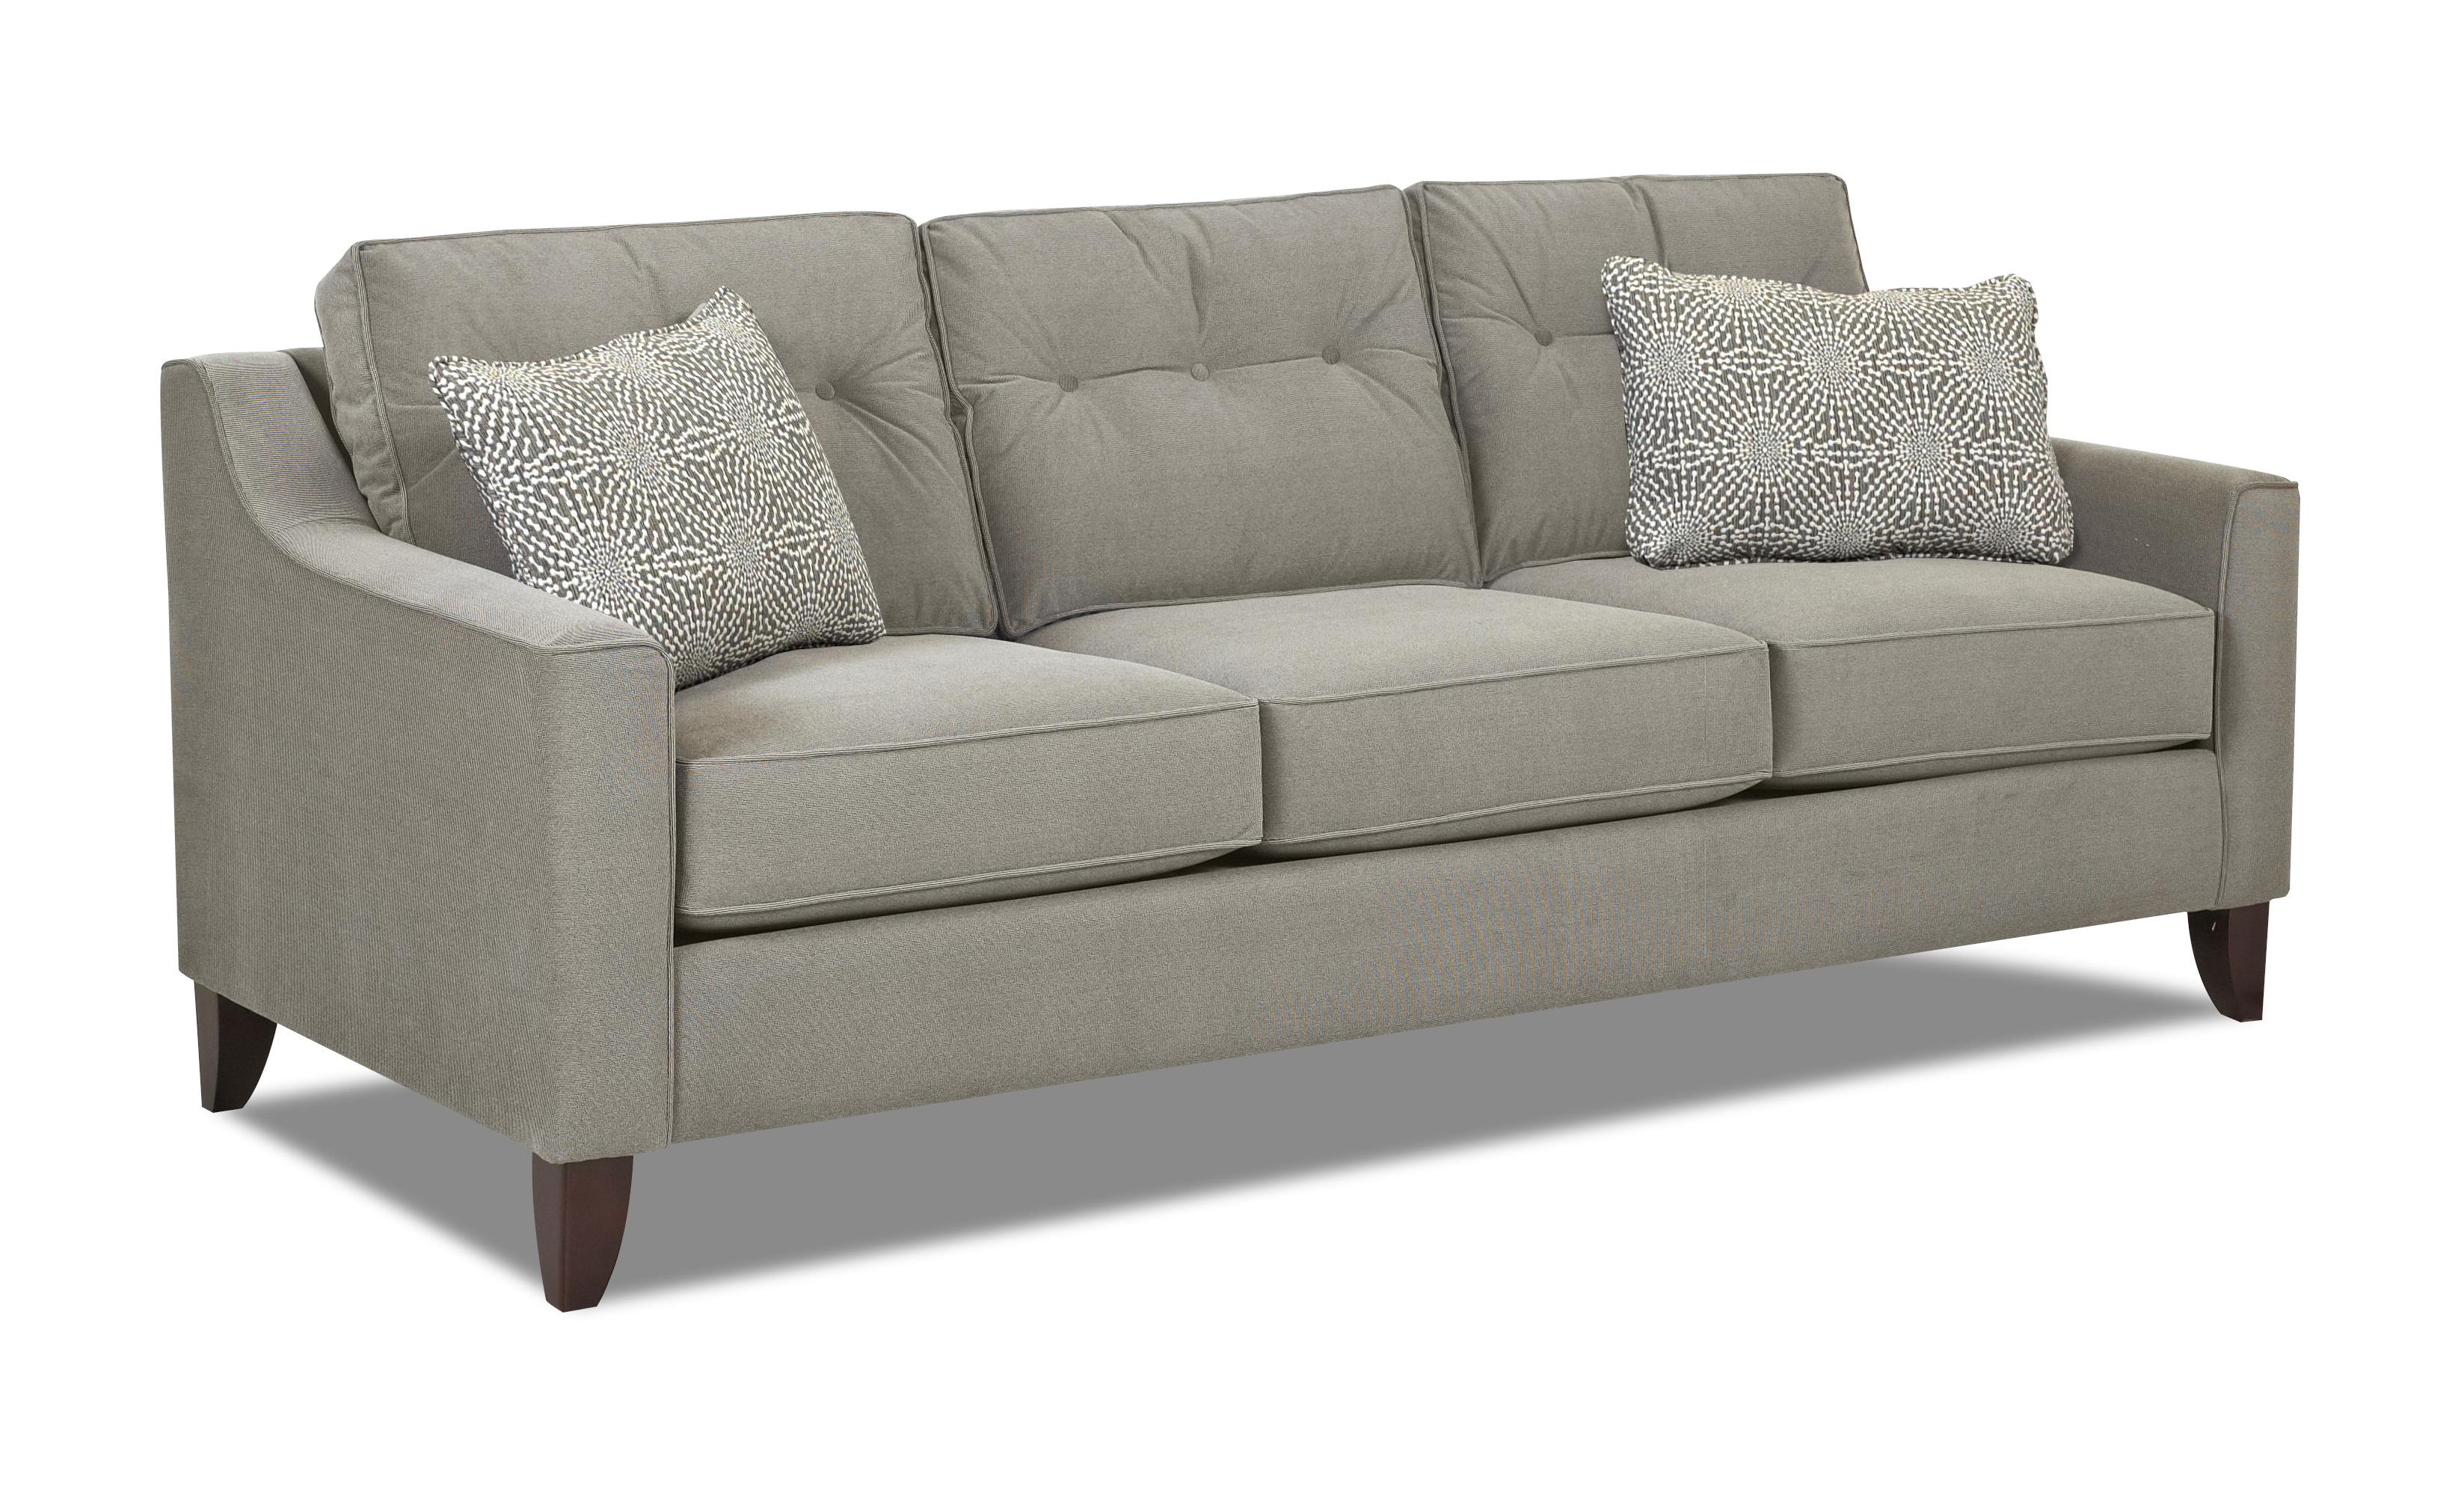 Klaussner Audrina Mid Century Modern Style Sofa with Tufted